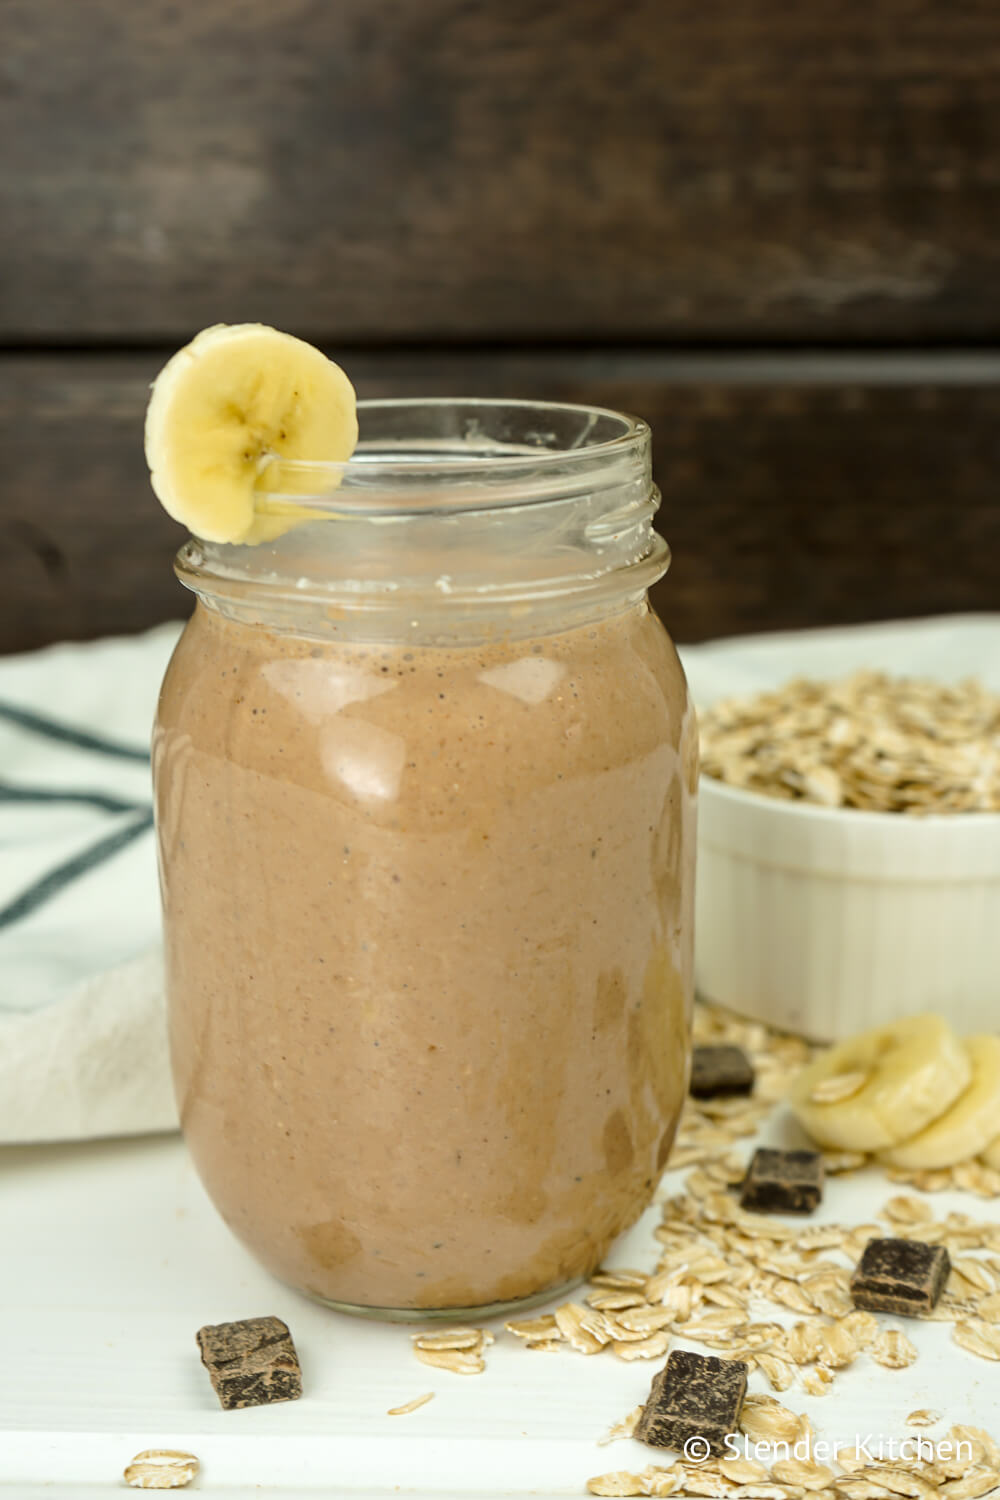 Chocolate banana smoothie in a mason jar with loose oats and chocolate.